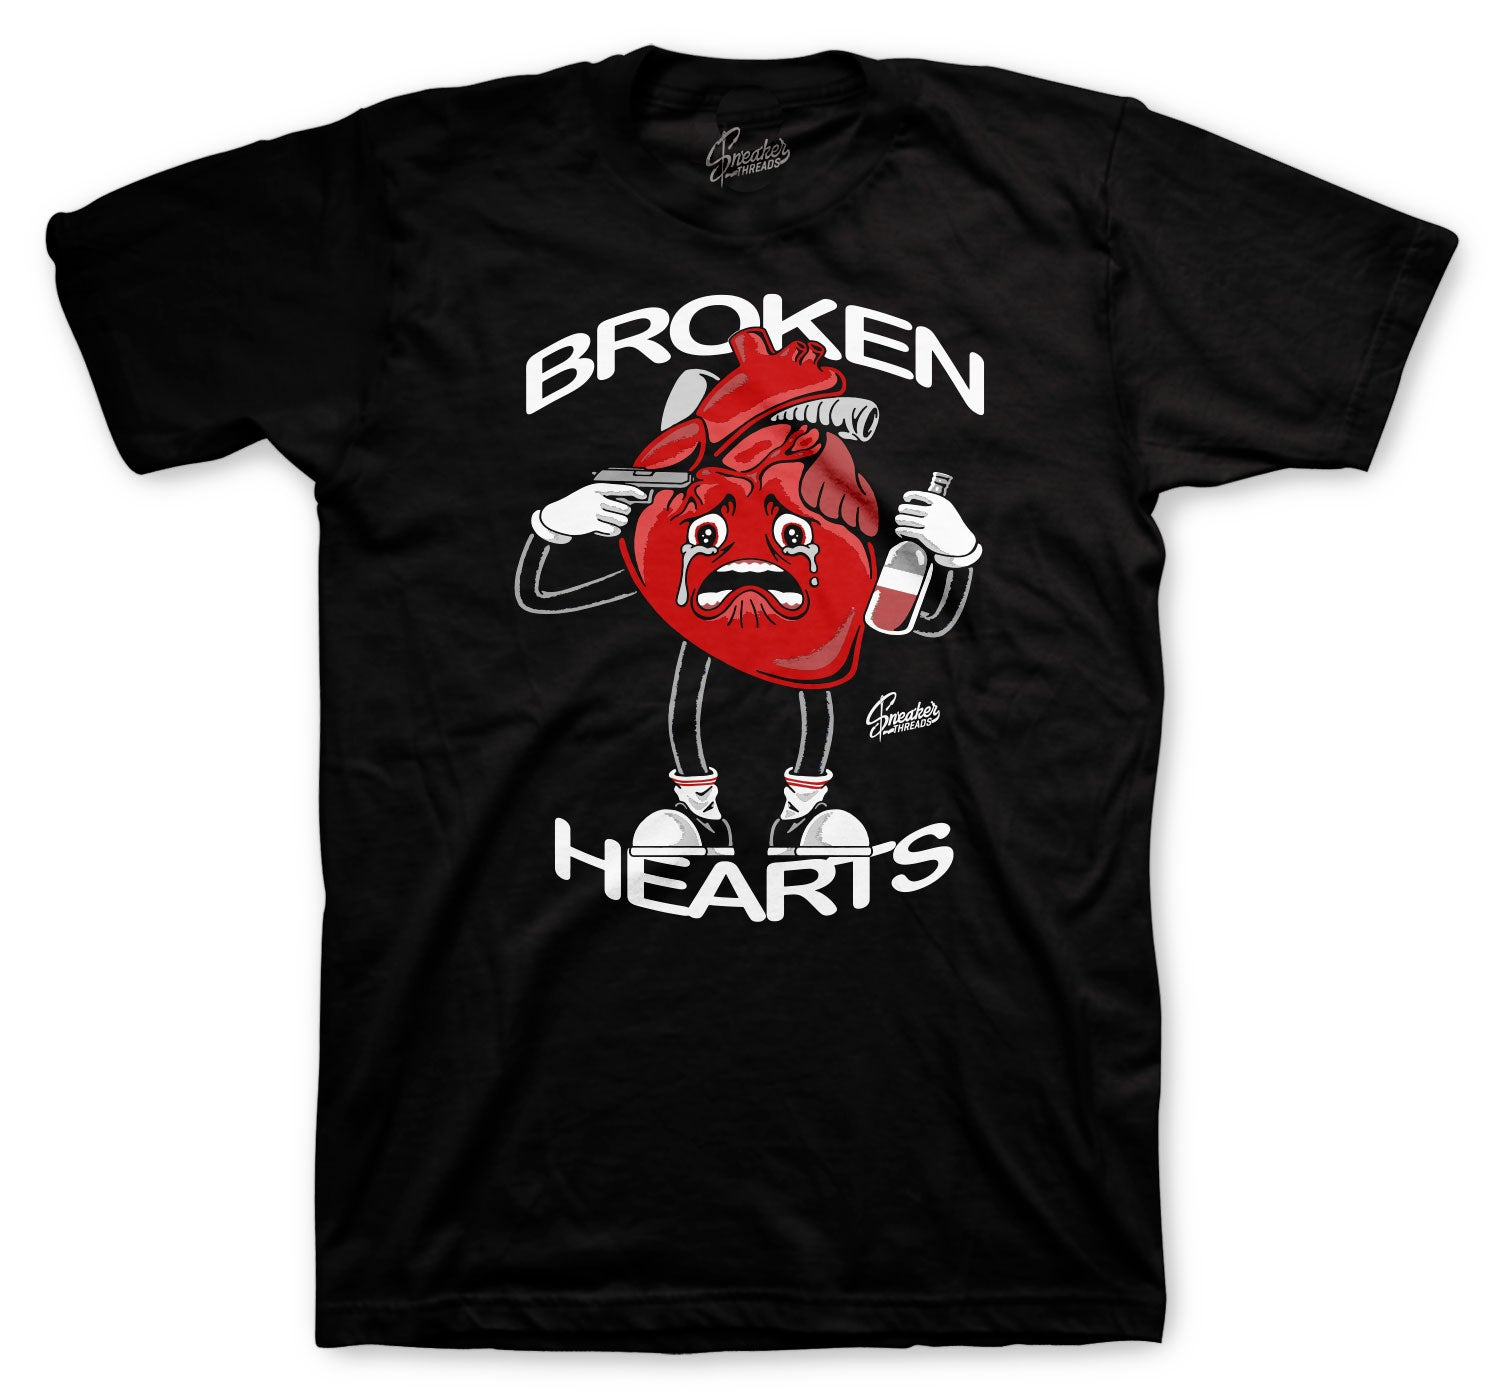 Jordan 6 Carmine Shirt - Broken Hearts - Black